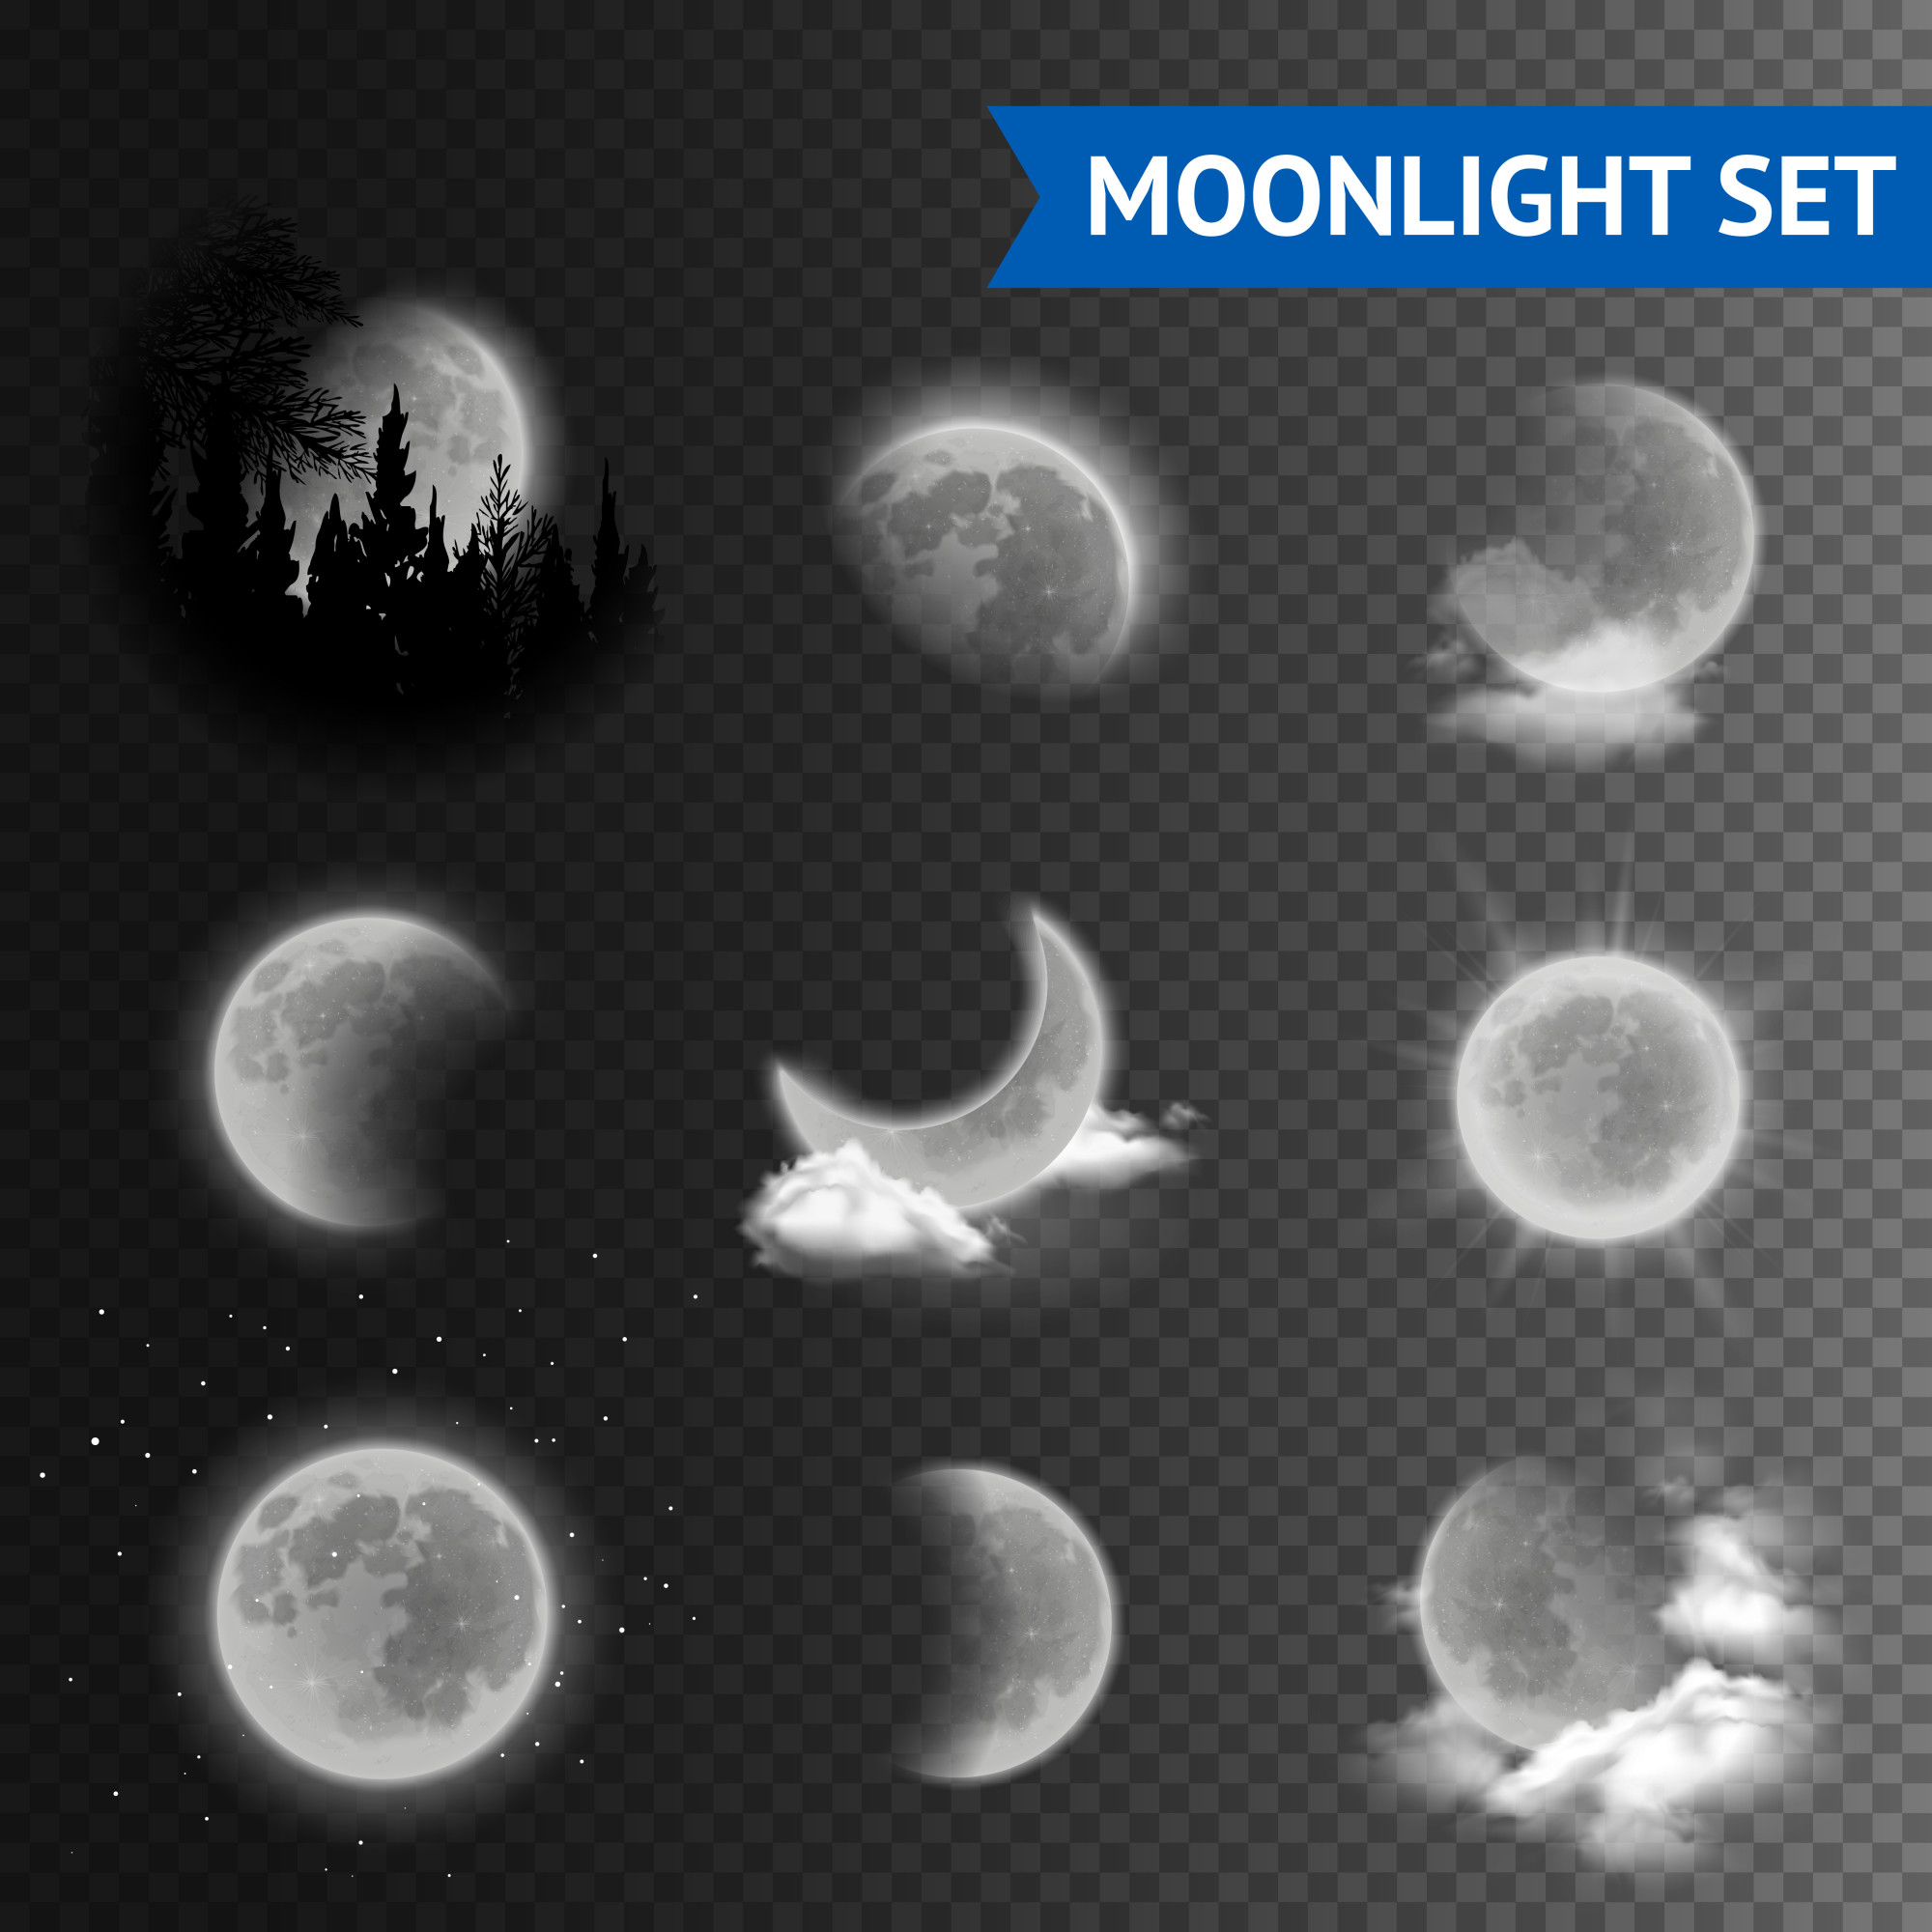 Moonlight transparent set